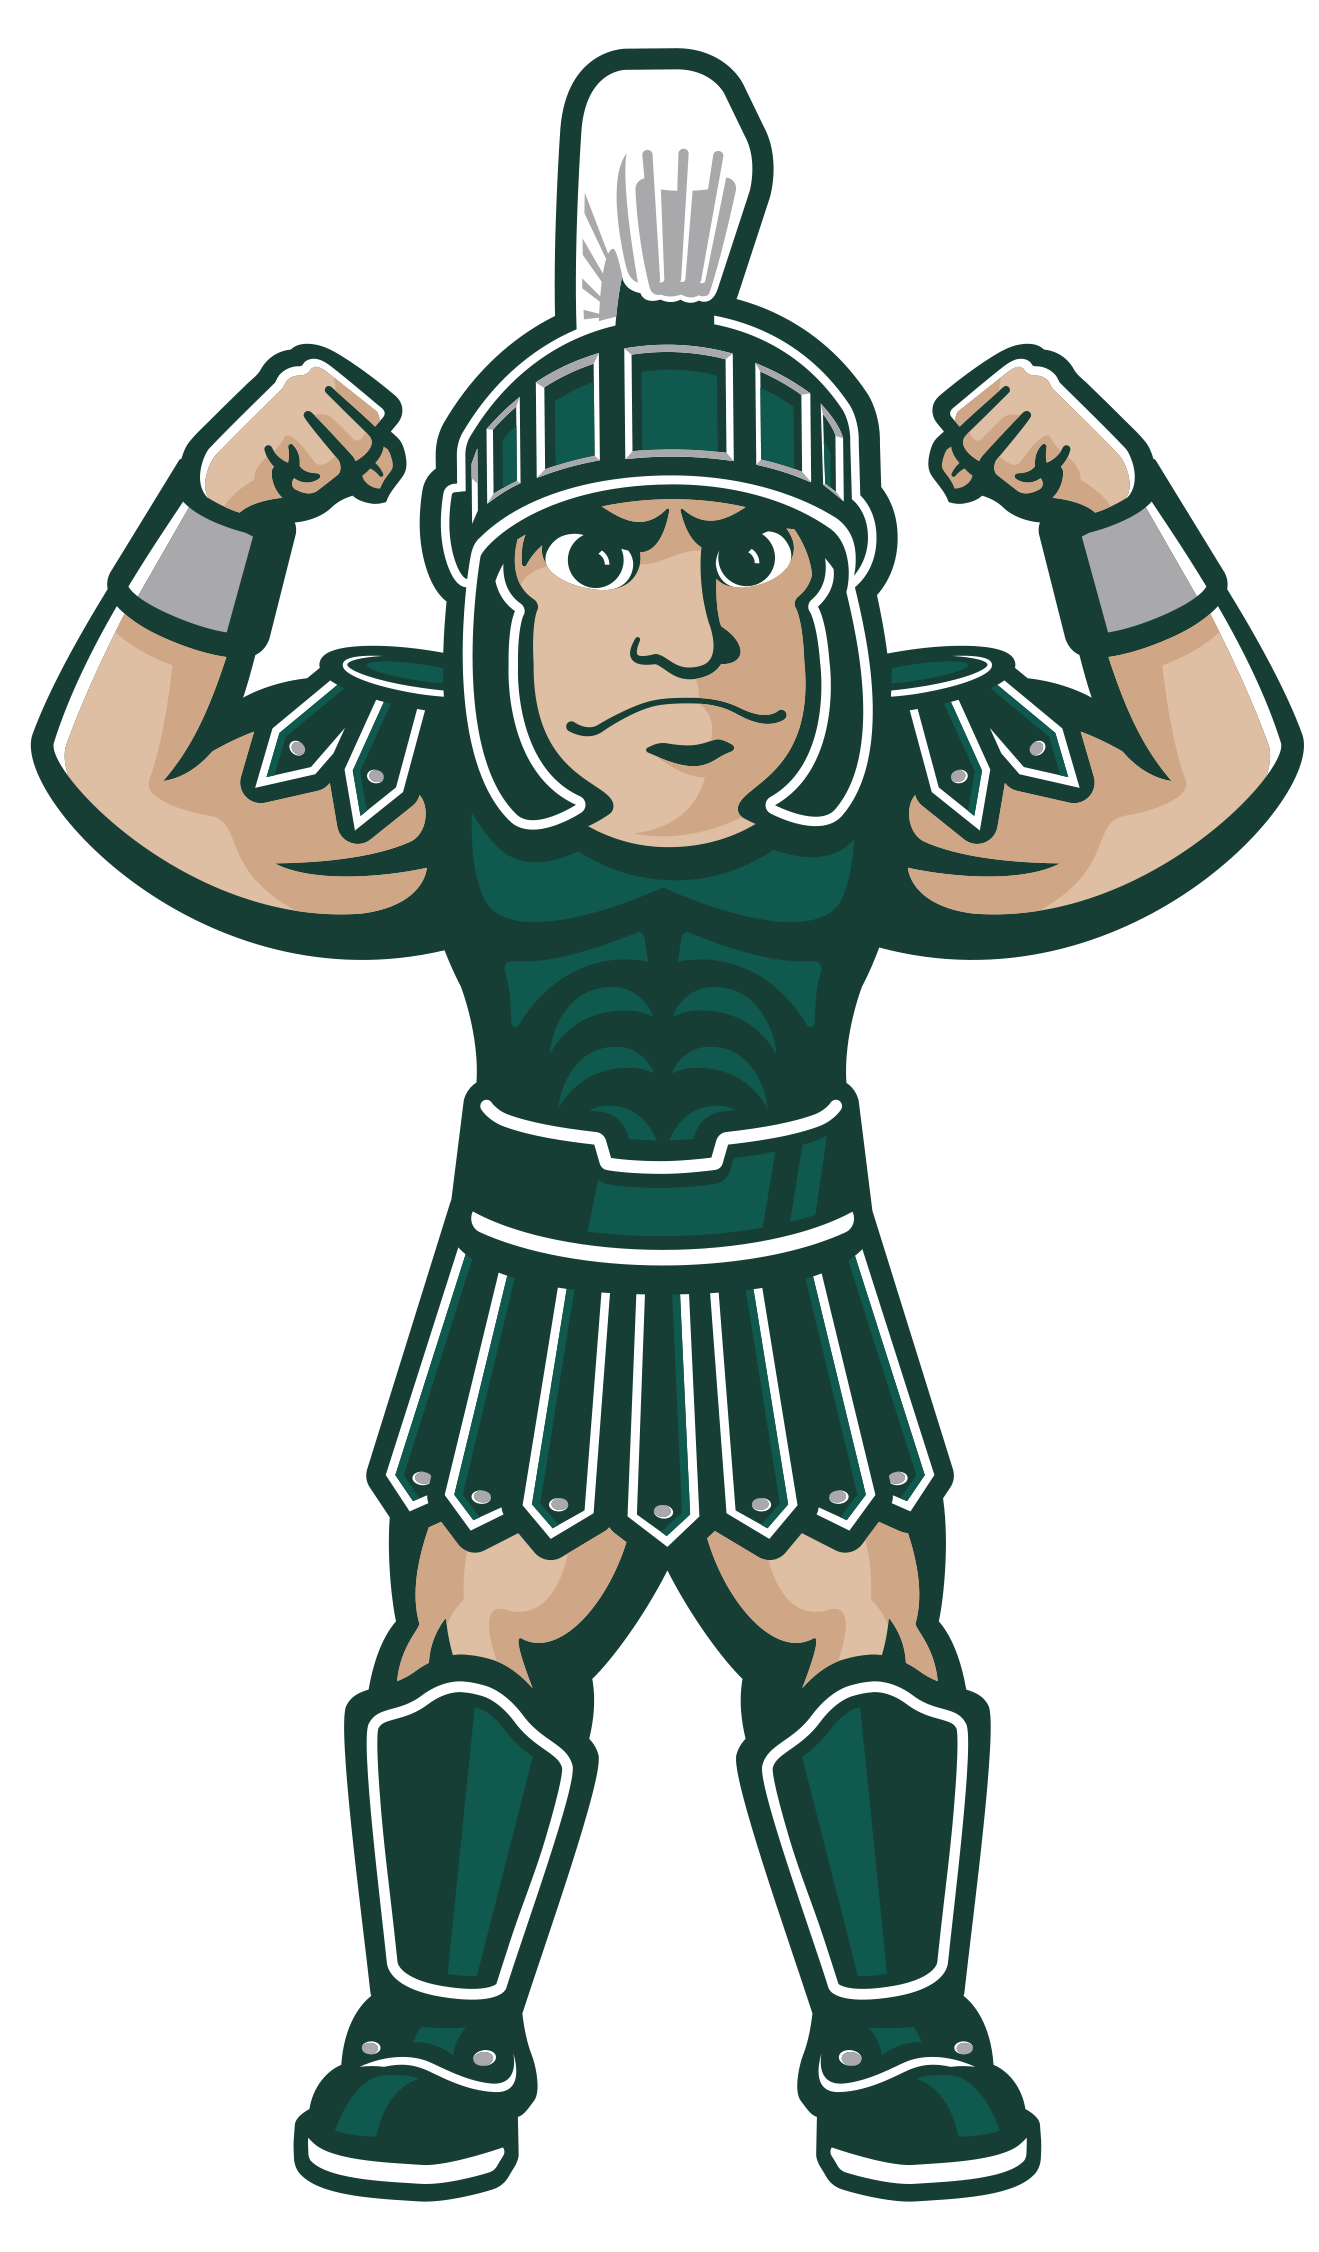 Sparty with Arms Up